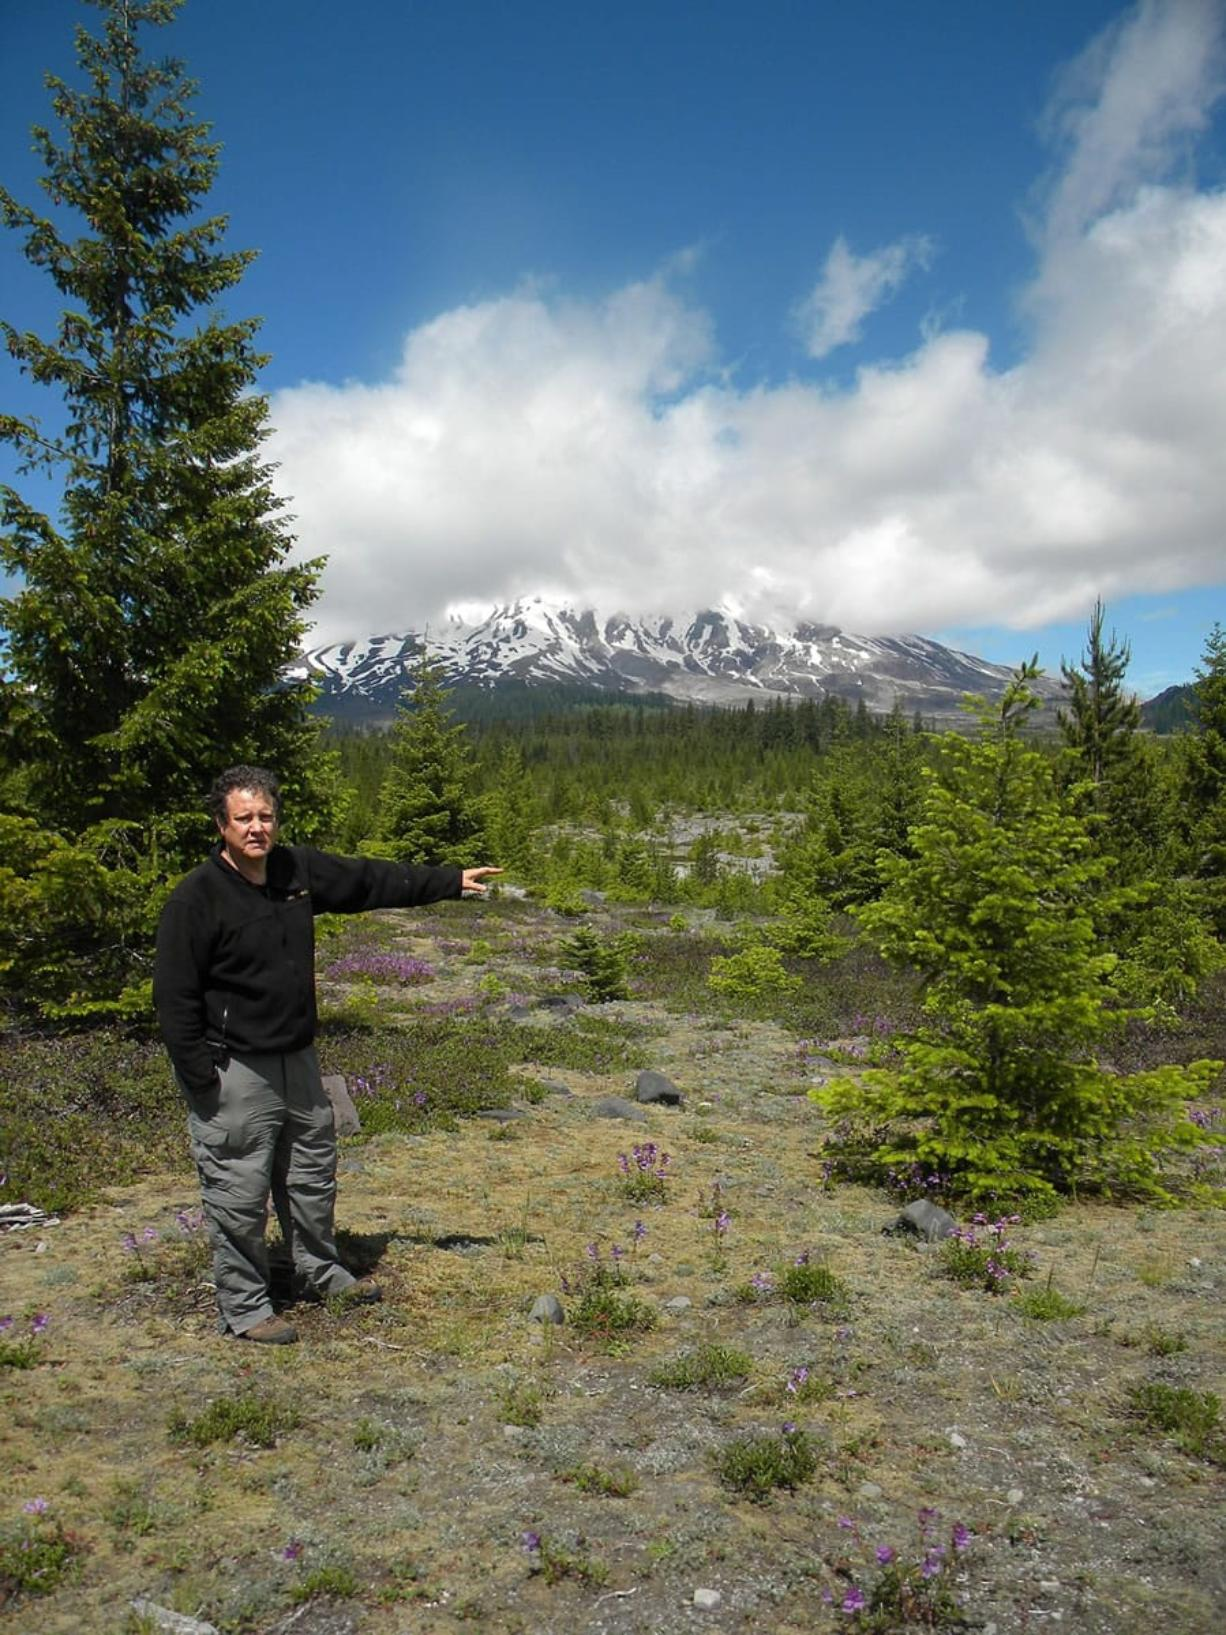 Volcanic Monument scientist Peter Frenzen worked to get permits issued for a magma research experiment that involves 23 detonations and the placement of 3,500 seismic sensors around Mount St. Helens.